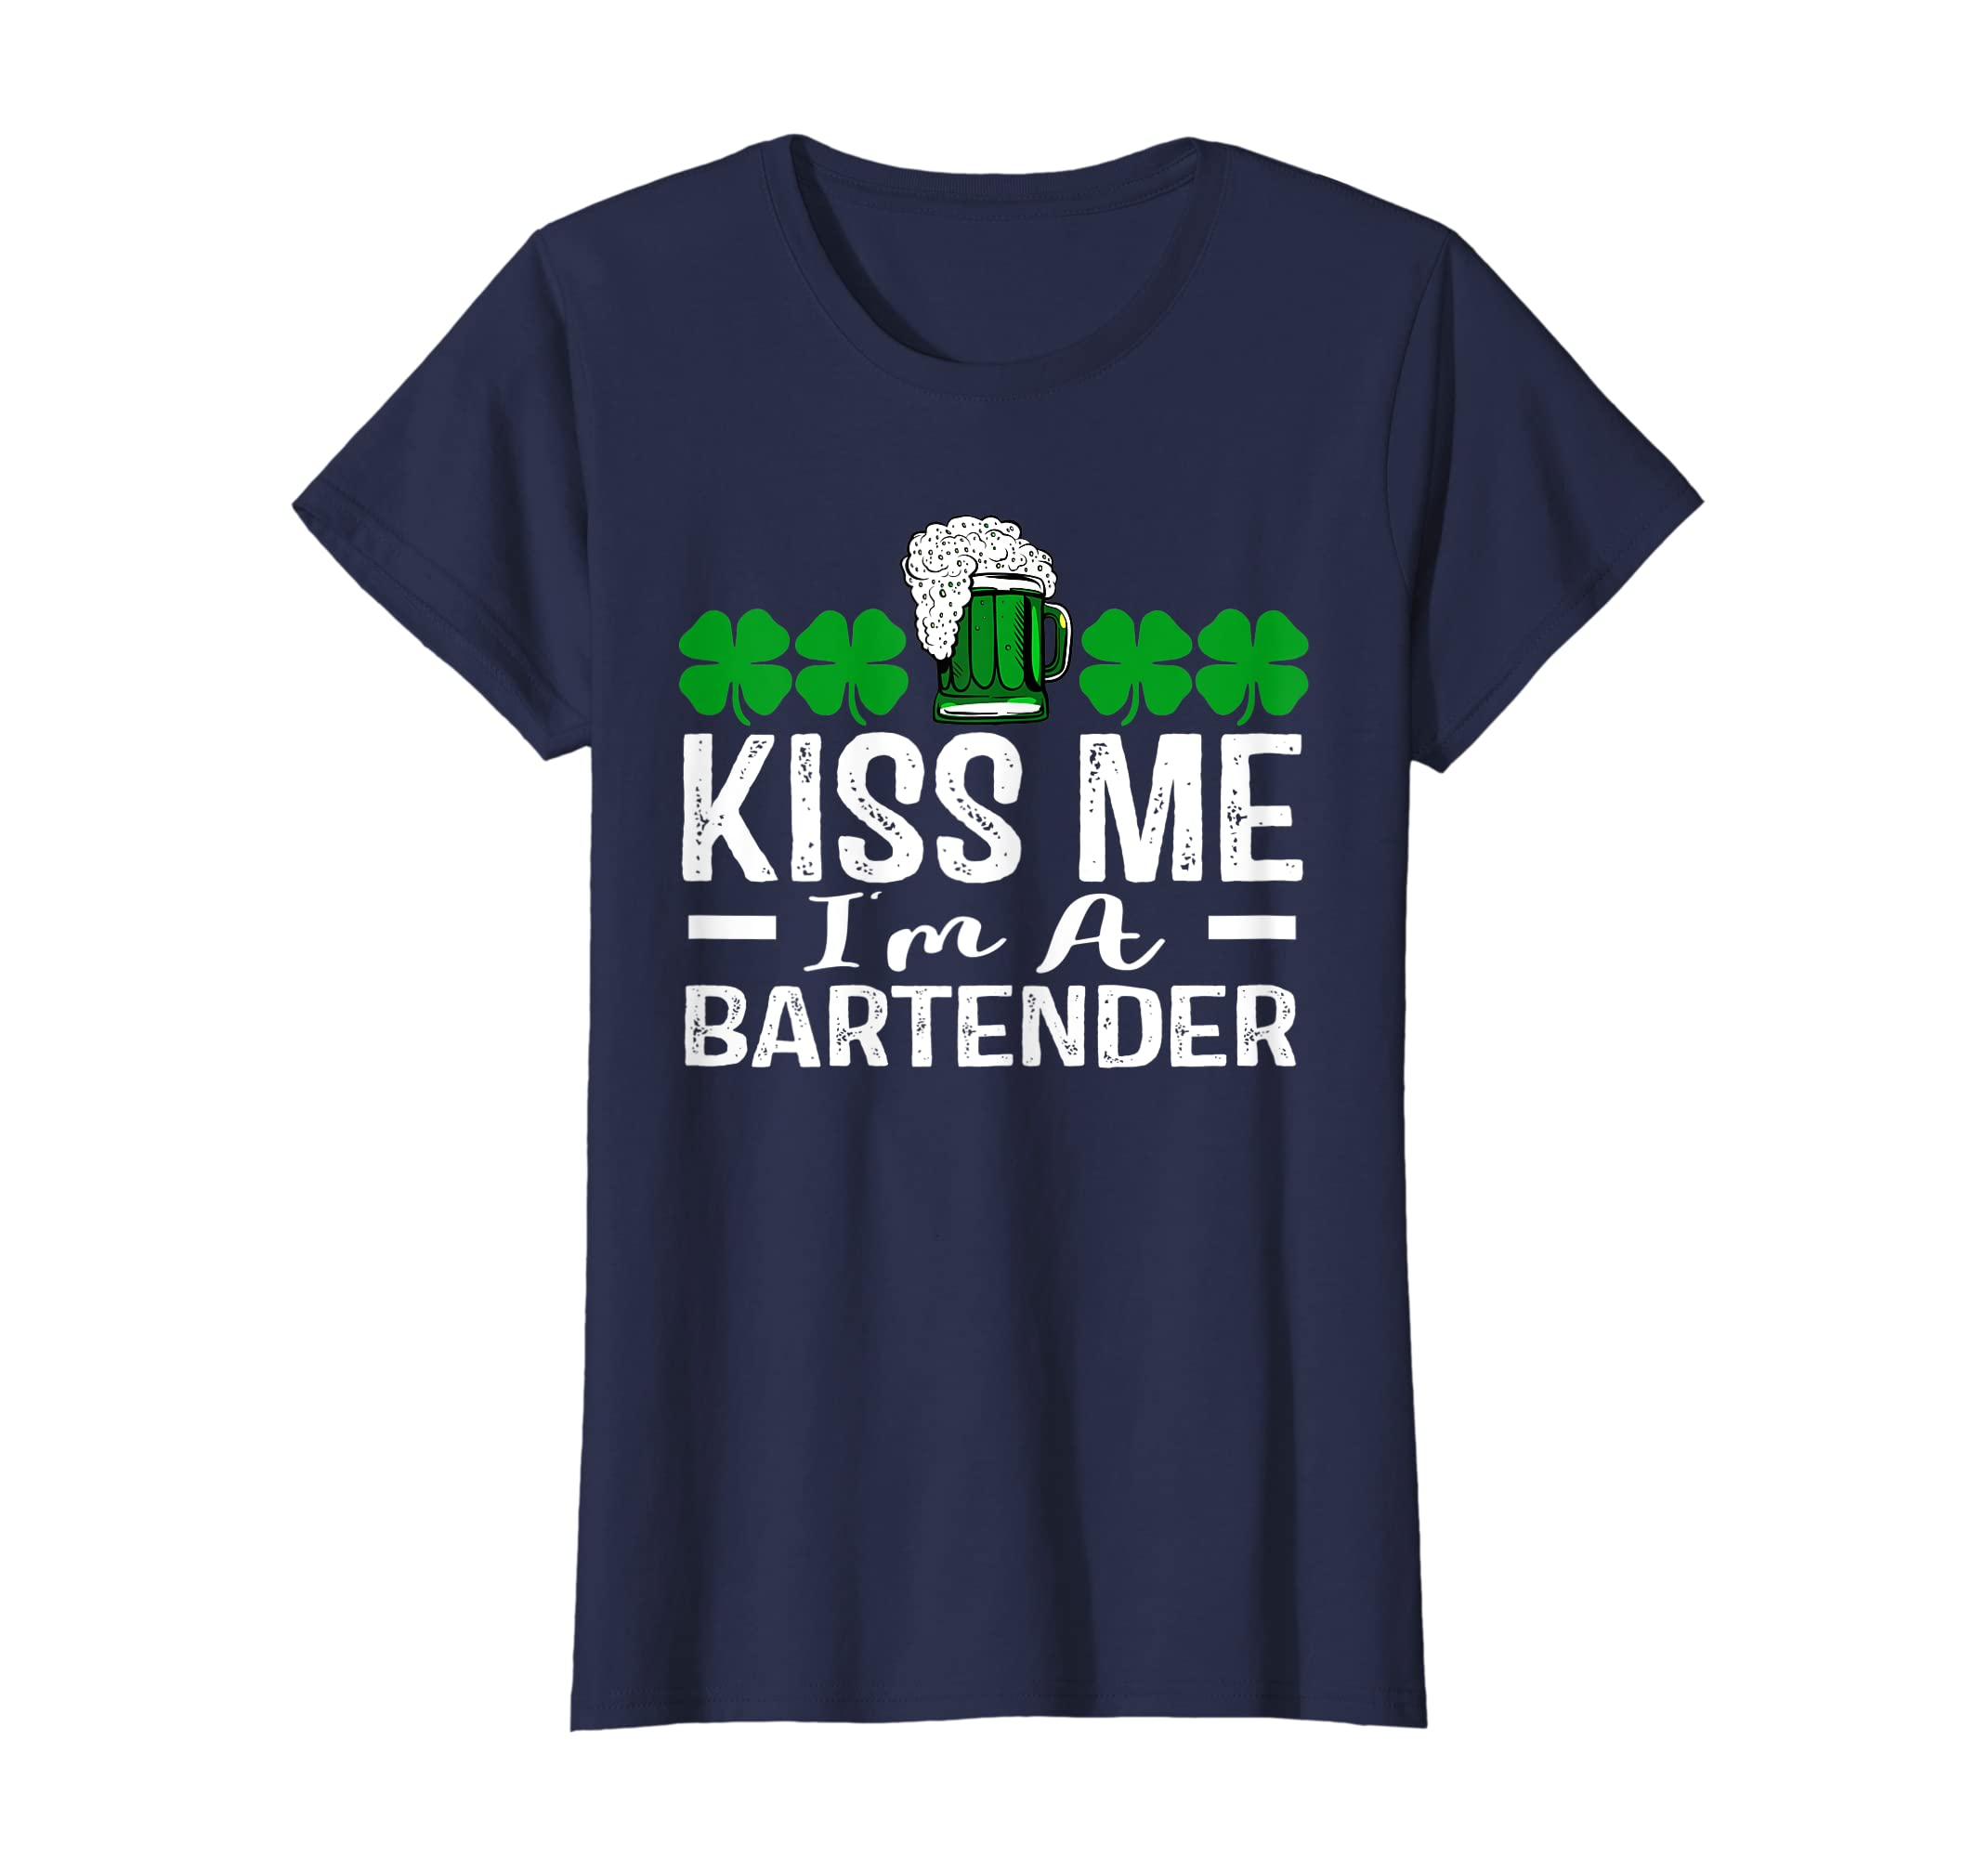 46e93e2d93 Amazon.com: Kiss Me I'm a Bartender St. Patrick's Day Funny Gift T-Shirt:  Clothing